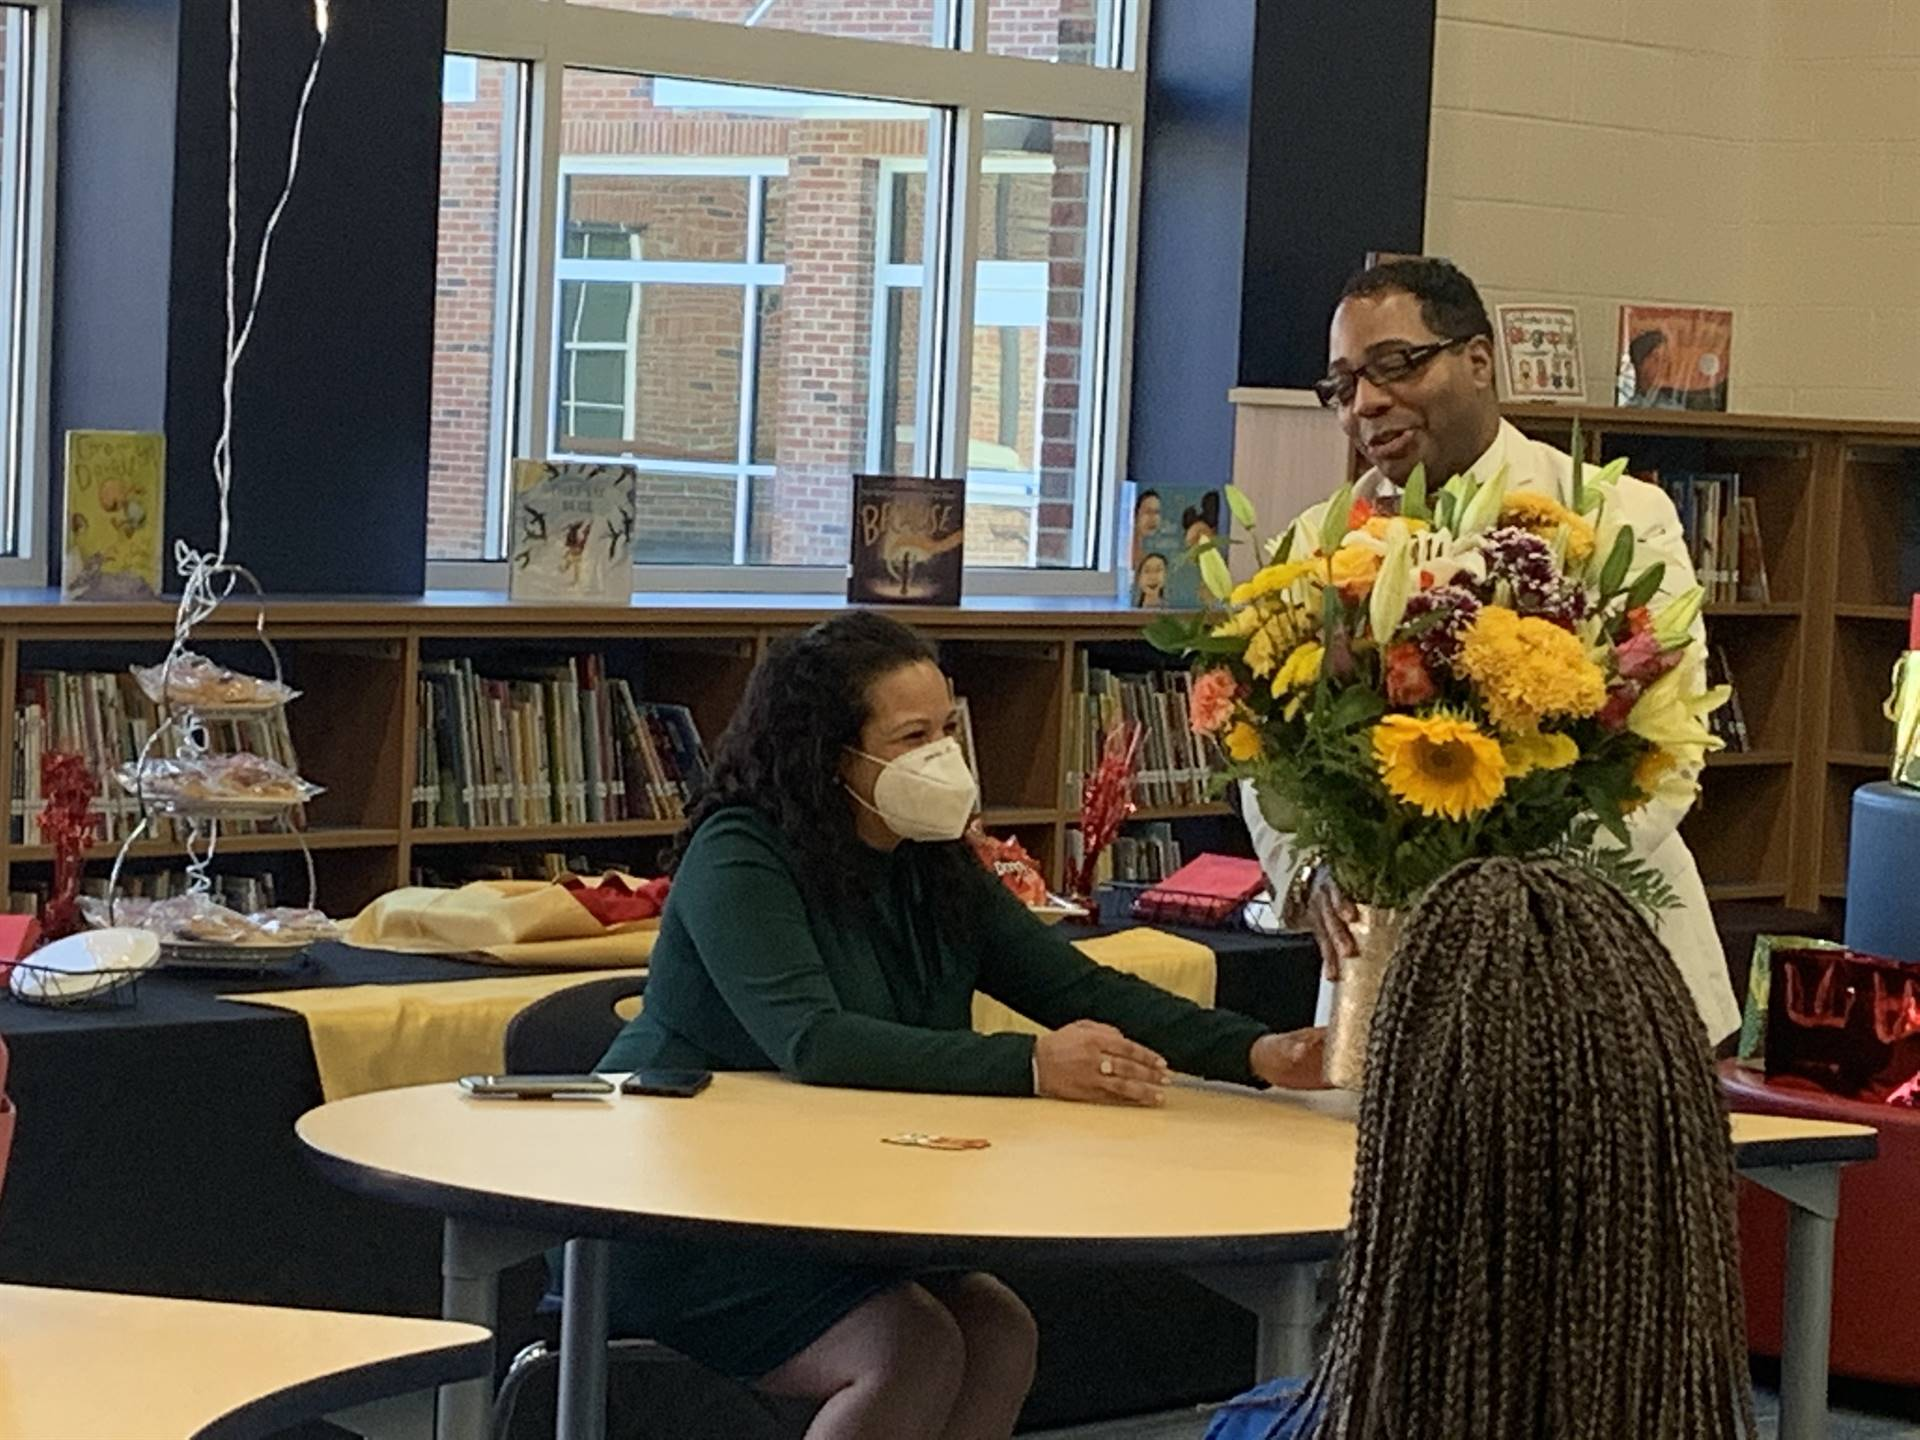 Dr. Berger presenting flowers to Supt.